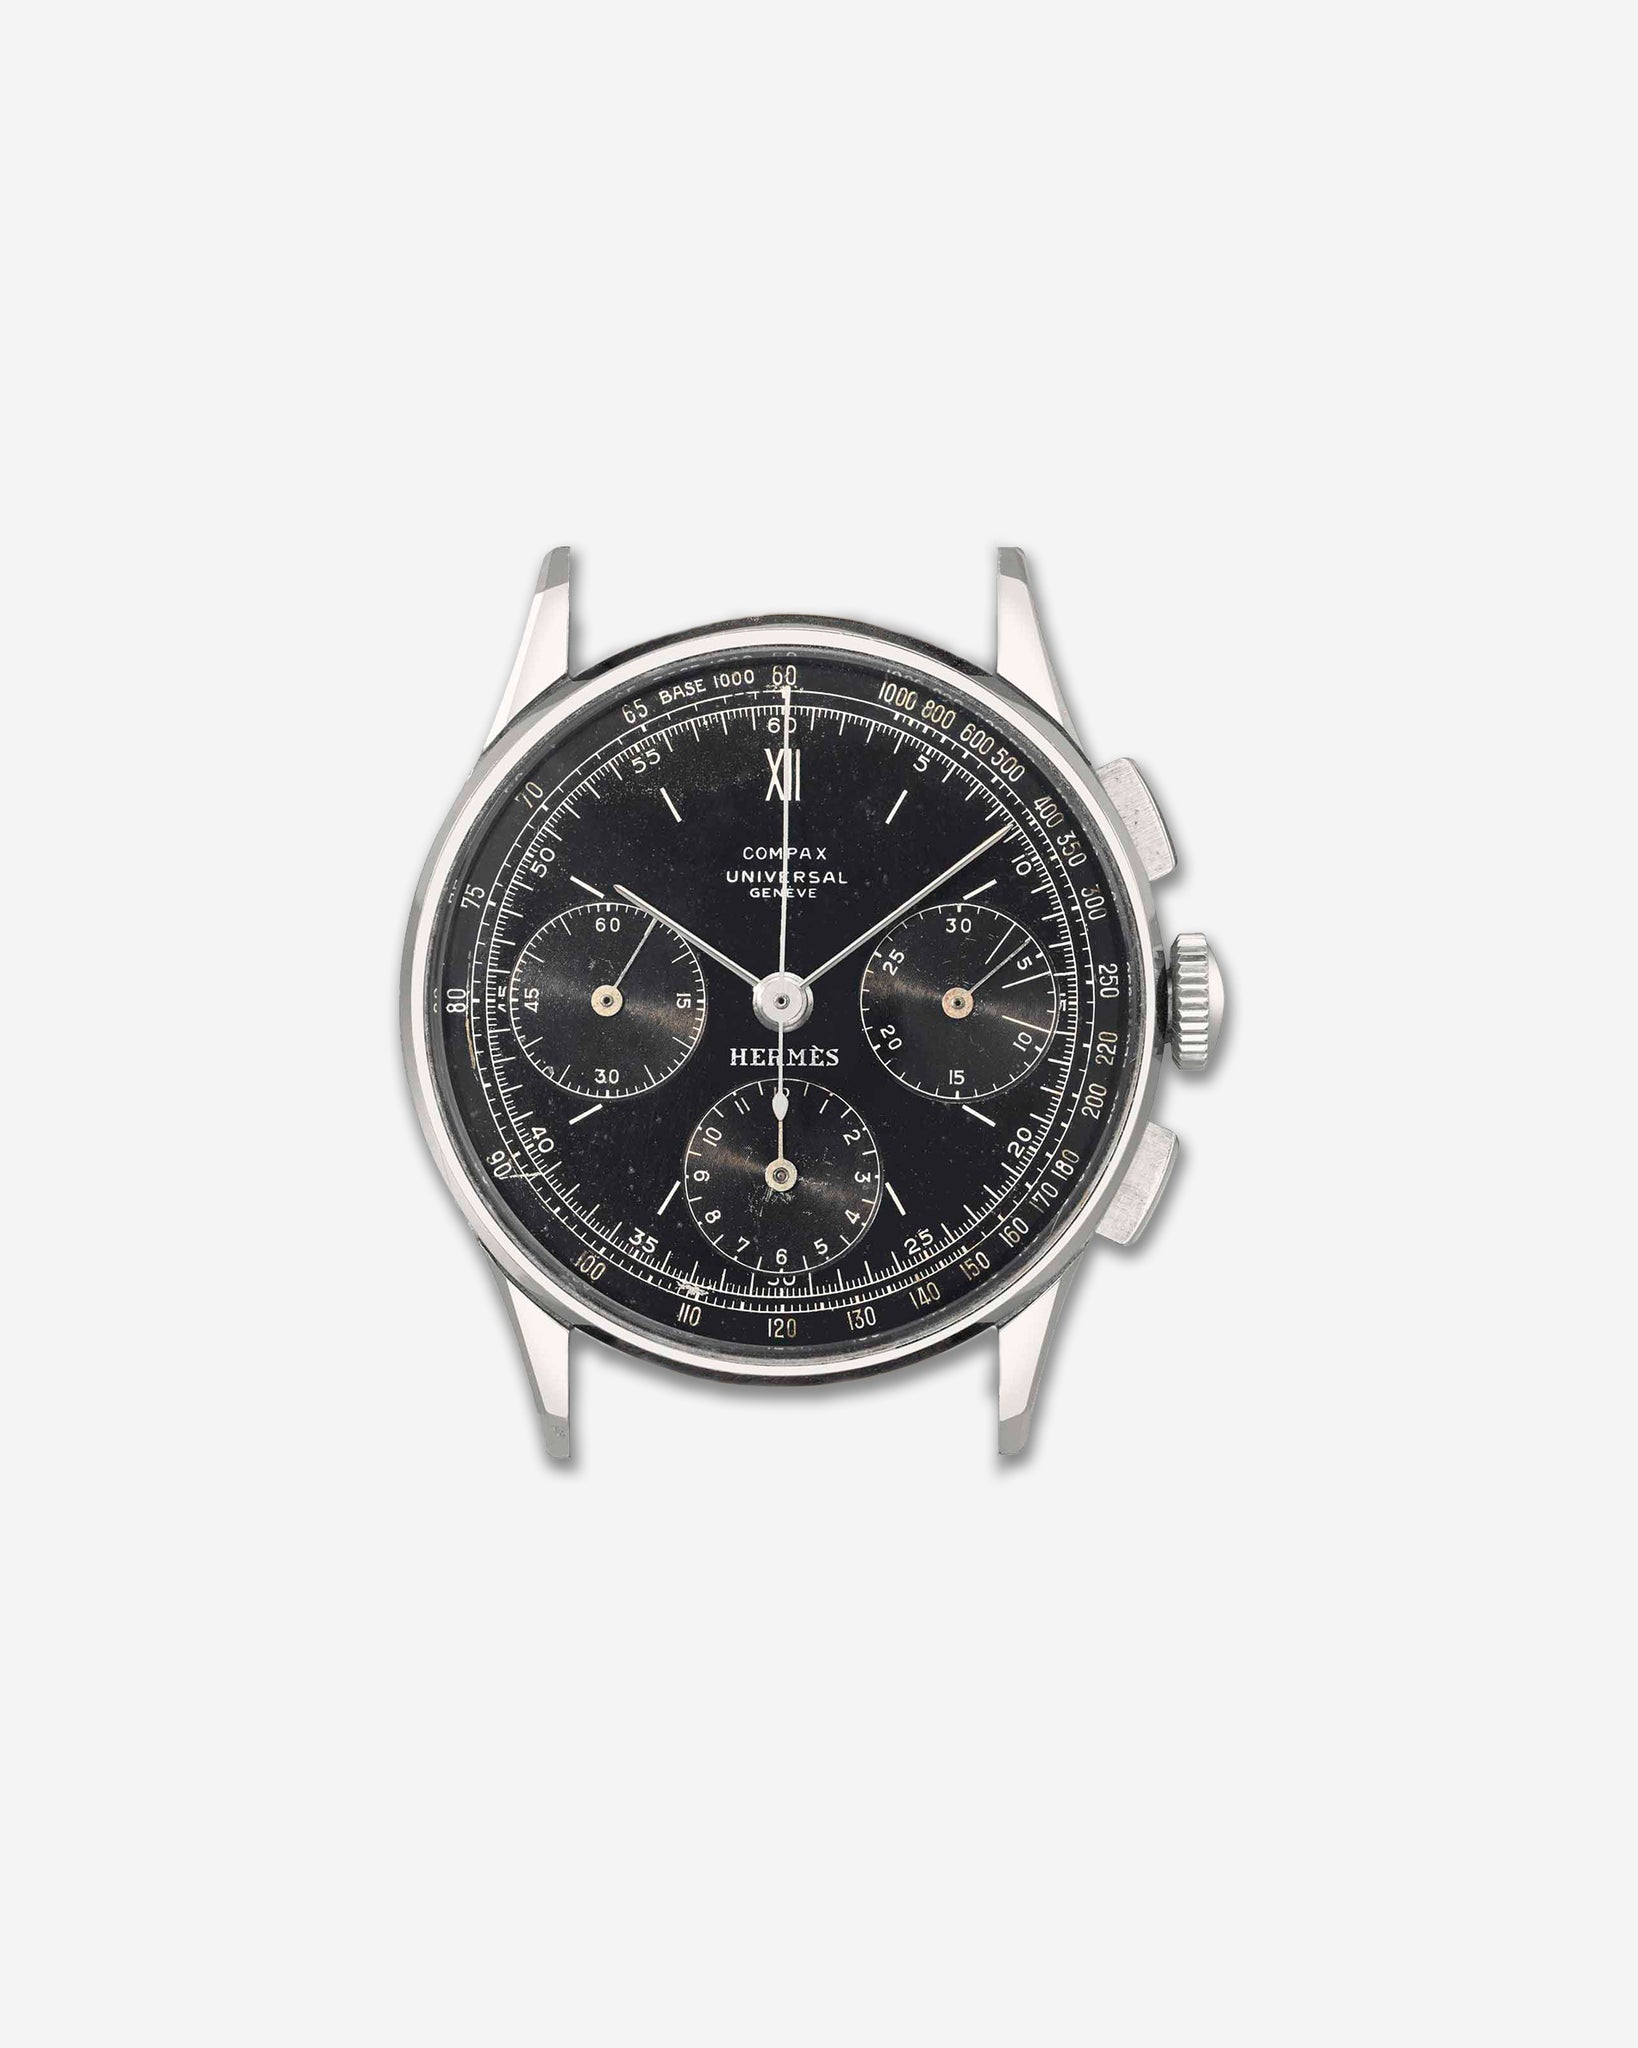 Universal three register chronograph signed by Hermes